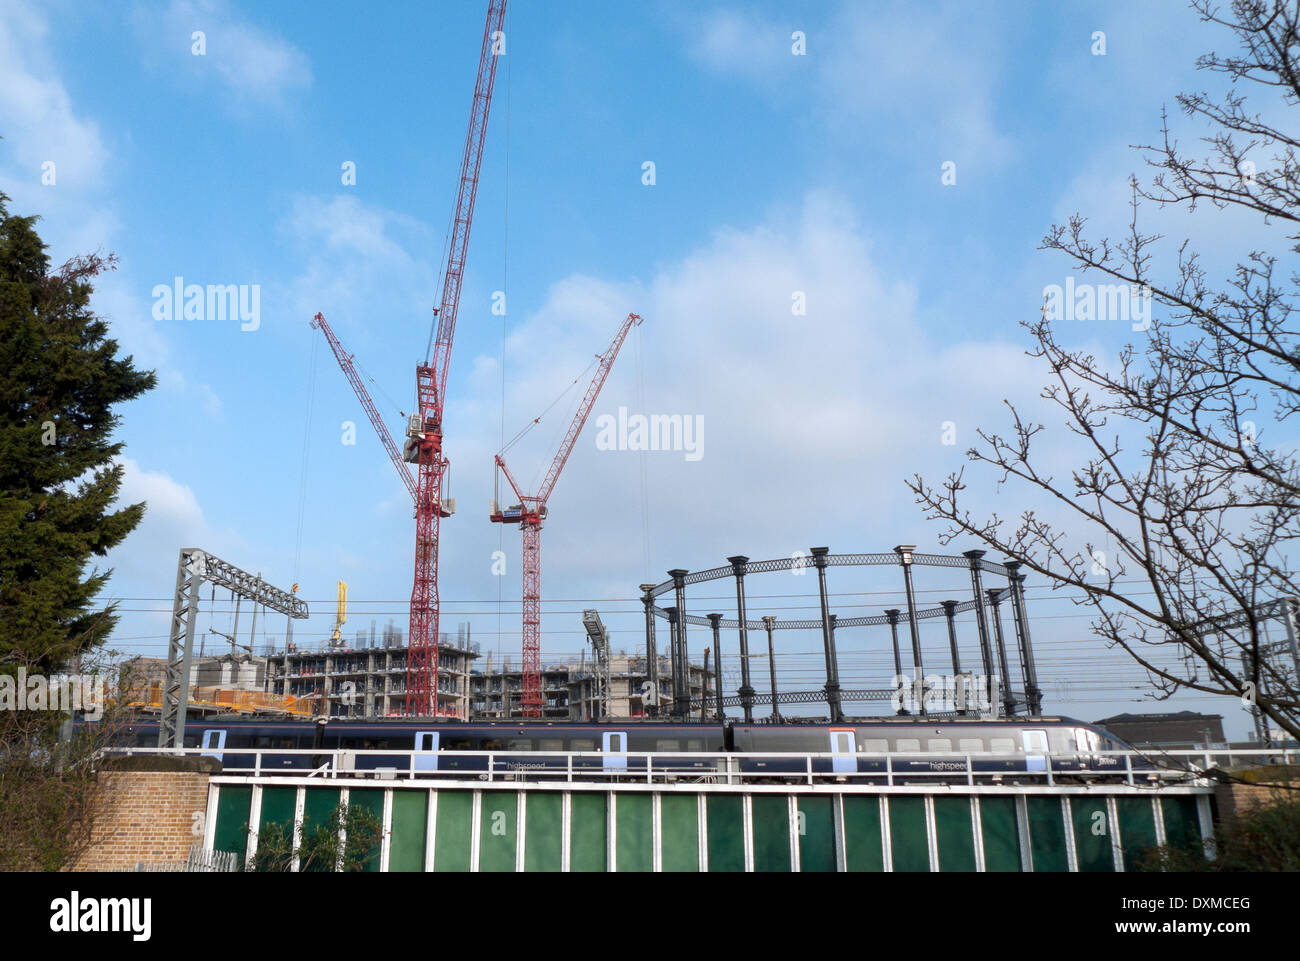 Gasholder No 8 viewed from Camley Park near St. Pancras in Kings Cross London NW1 UK KATHY DEWITT - Stock Image